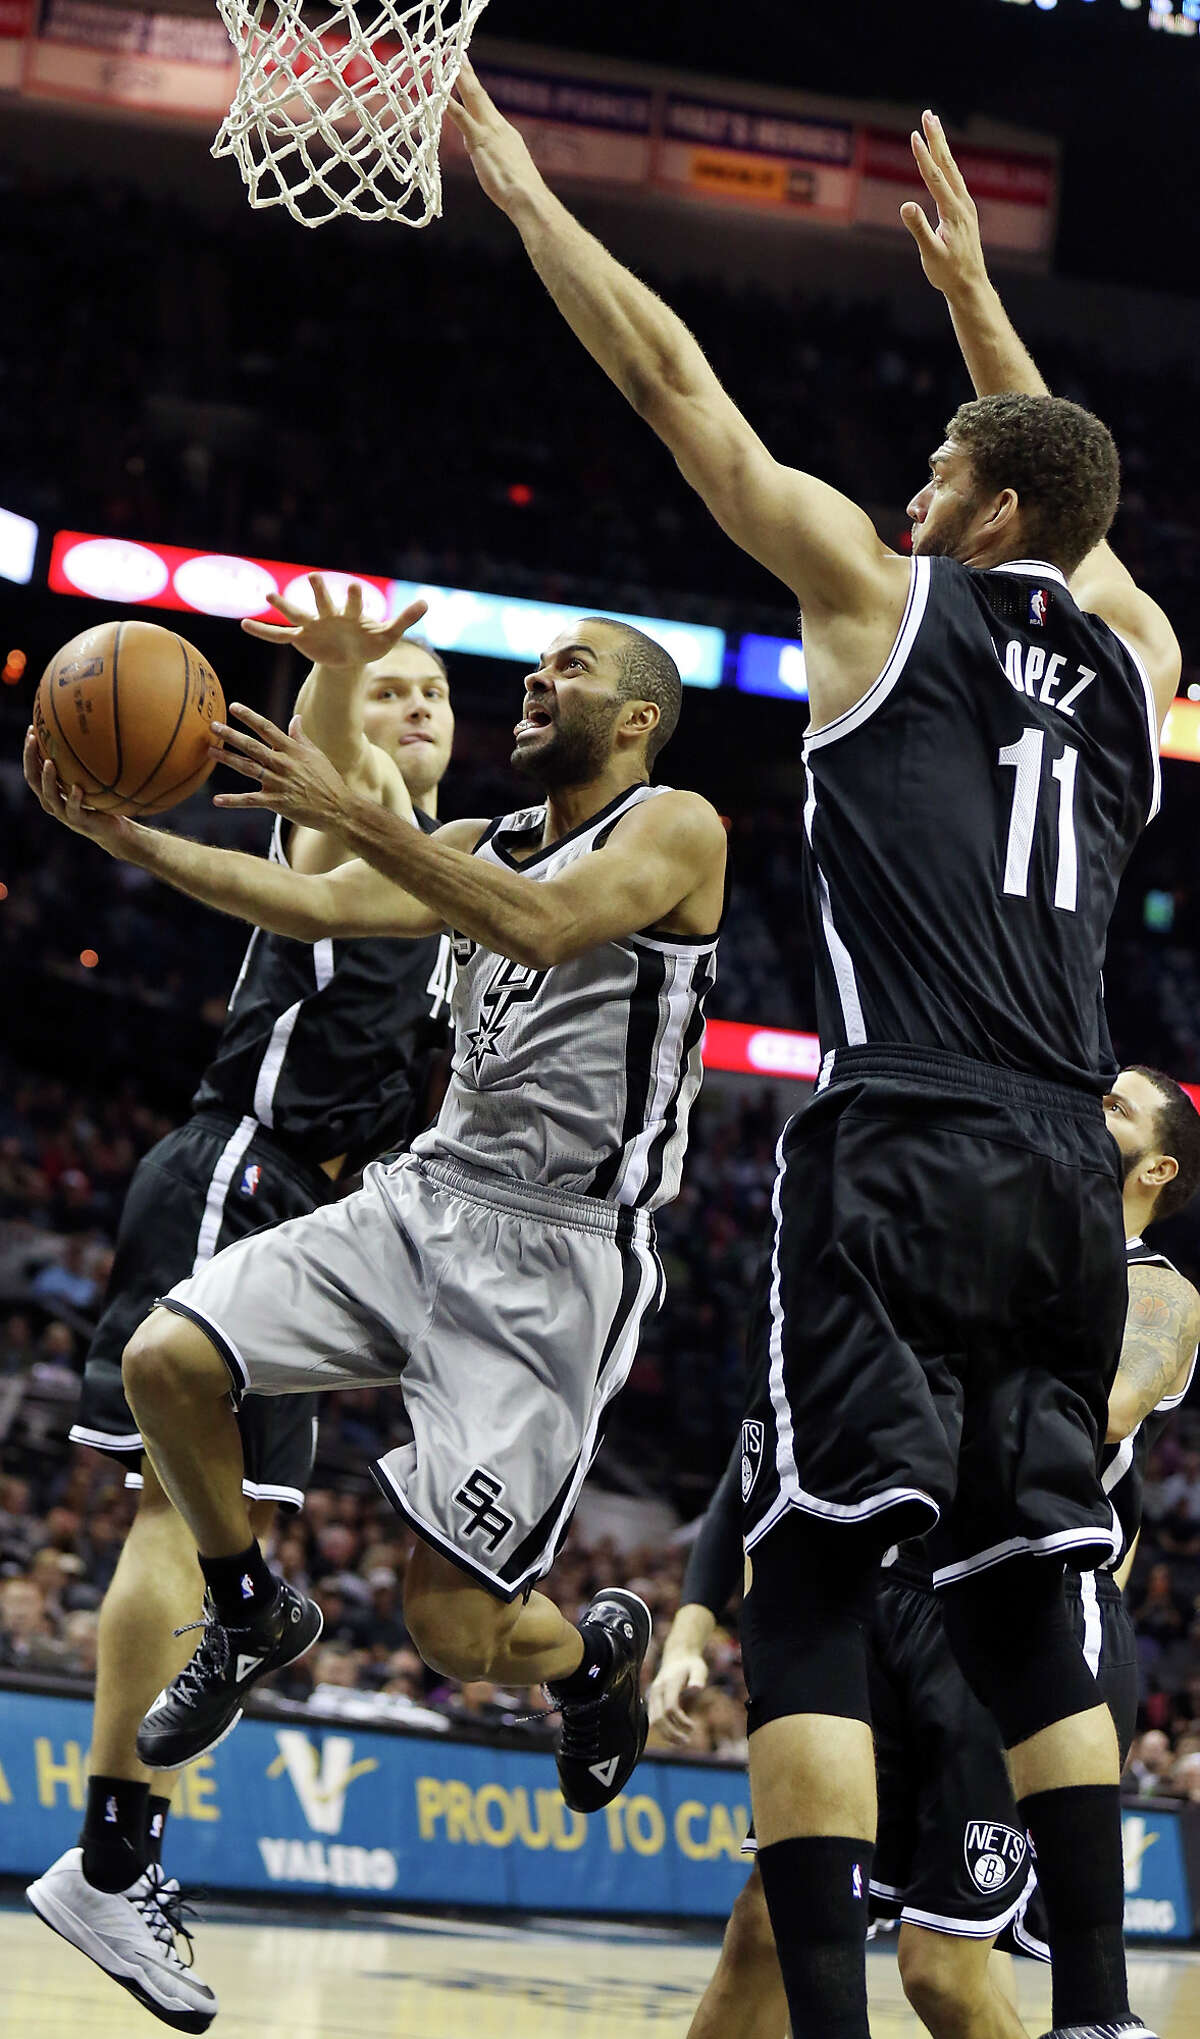 San Antonio Spurs' Tony Parker drives to the basket between Brooklyn Nets' Bojan Bogdanovic (left) and Brook Lopez during first half action Saturday Nov. 22, 2014 at the AT&T Center.